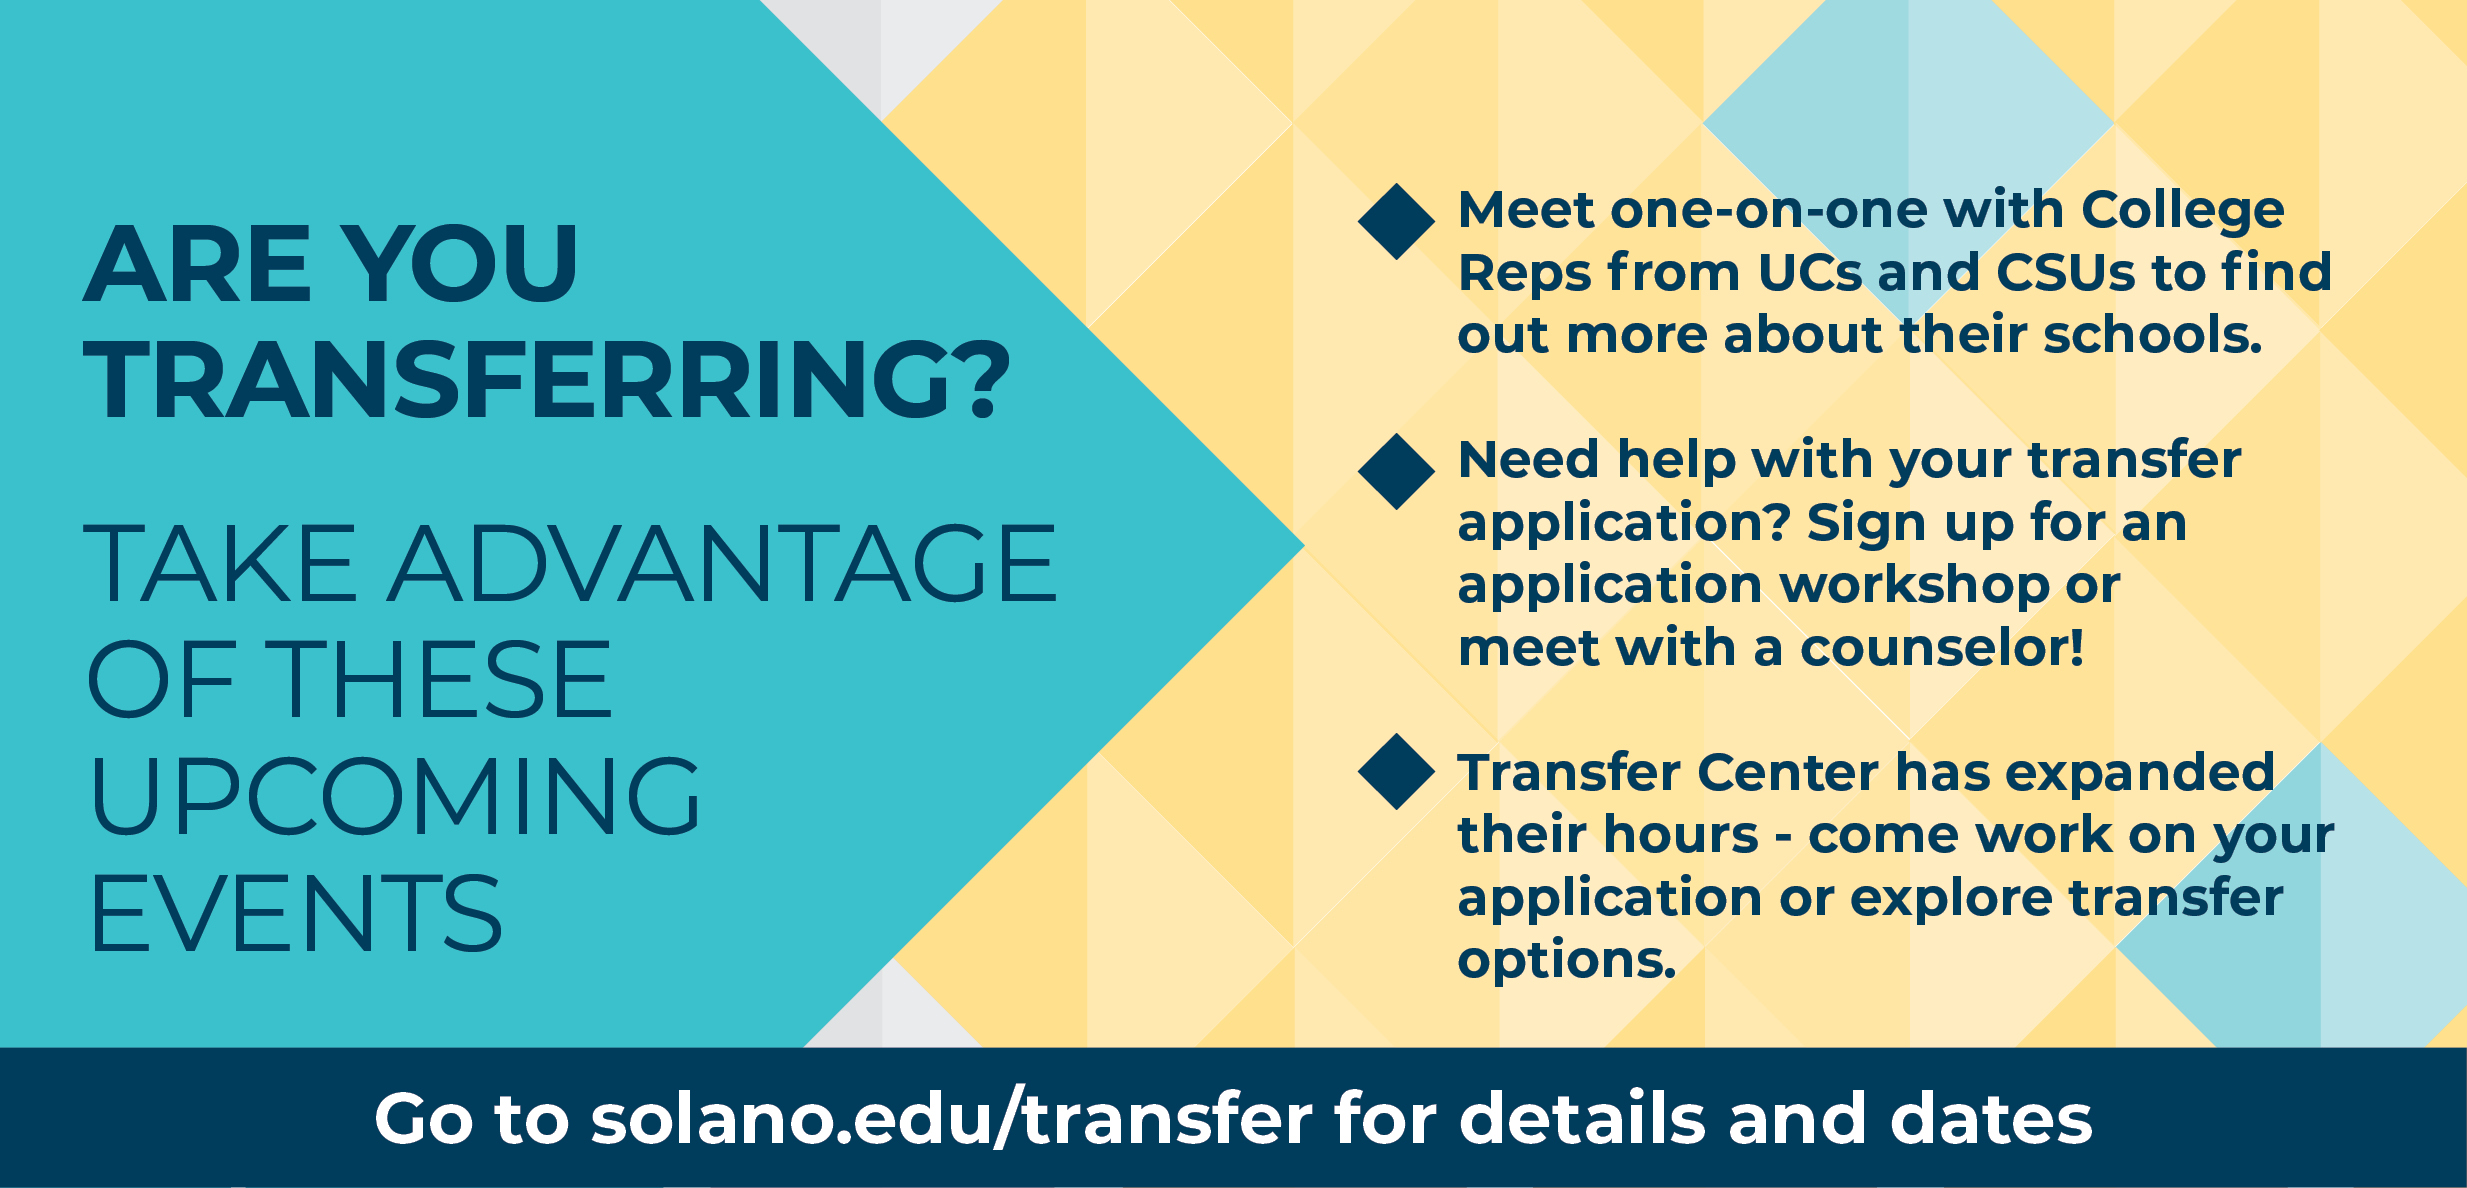 Are you Transferring? Take advantage of these upcoming events. Meet one-on-one with college reps from UCs and CSUs to find out more about their schools. Need help with your transfer application? Sign up for an application workshop or meet with a counselor! Transfer Center has expanded their hours - come work on your applications or explore transfer options. Go to solano.edu/transfer for details and dates.